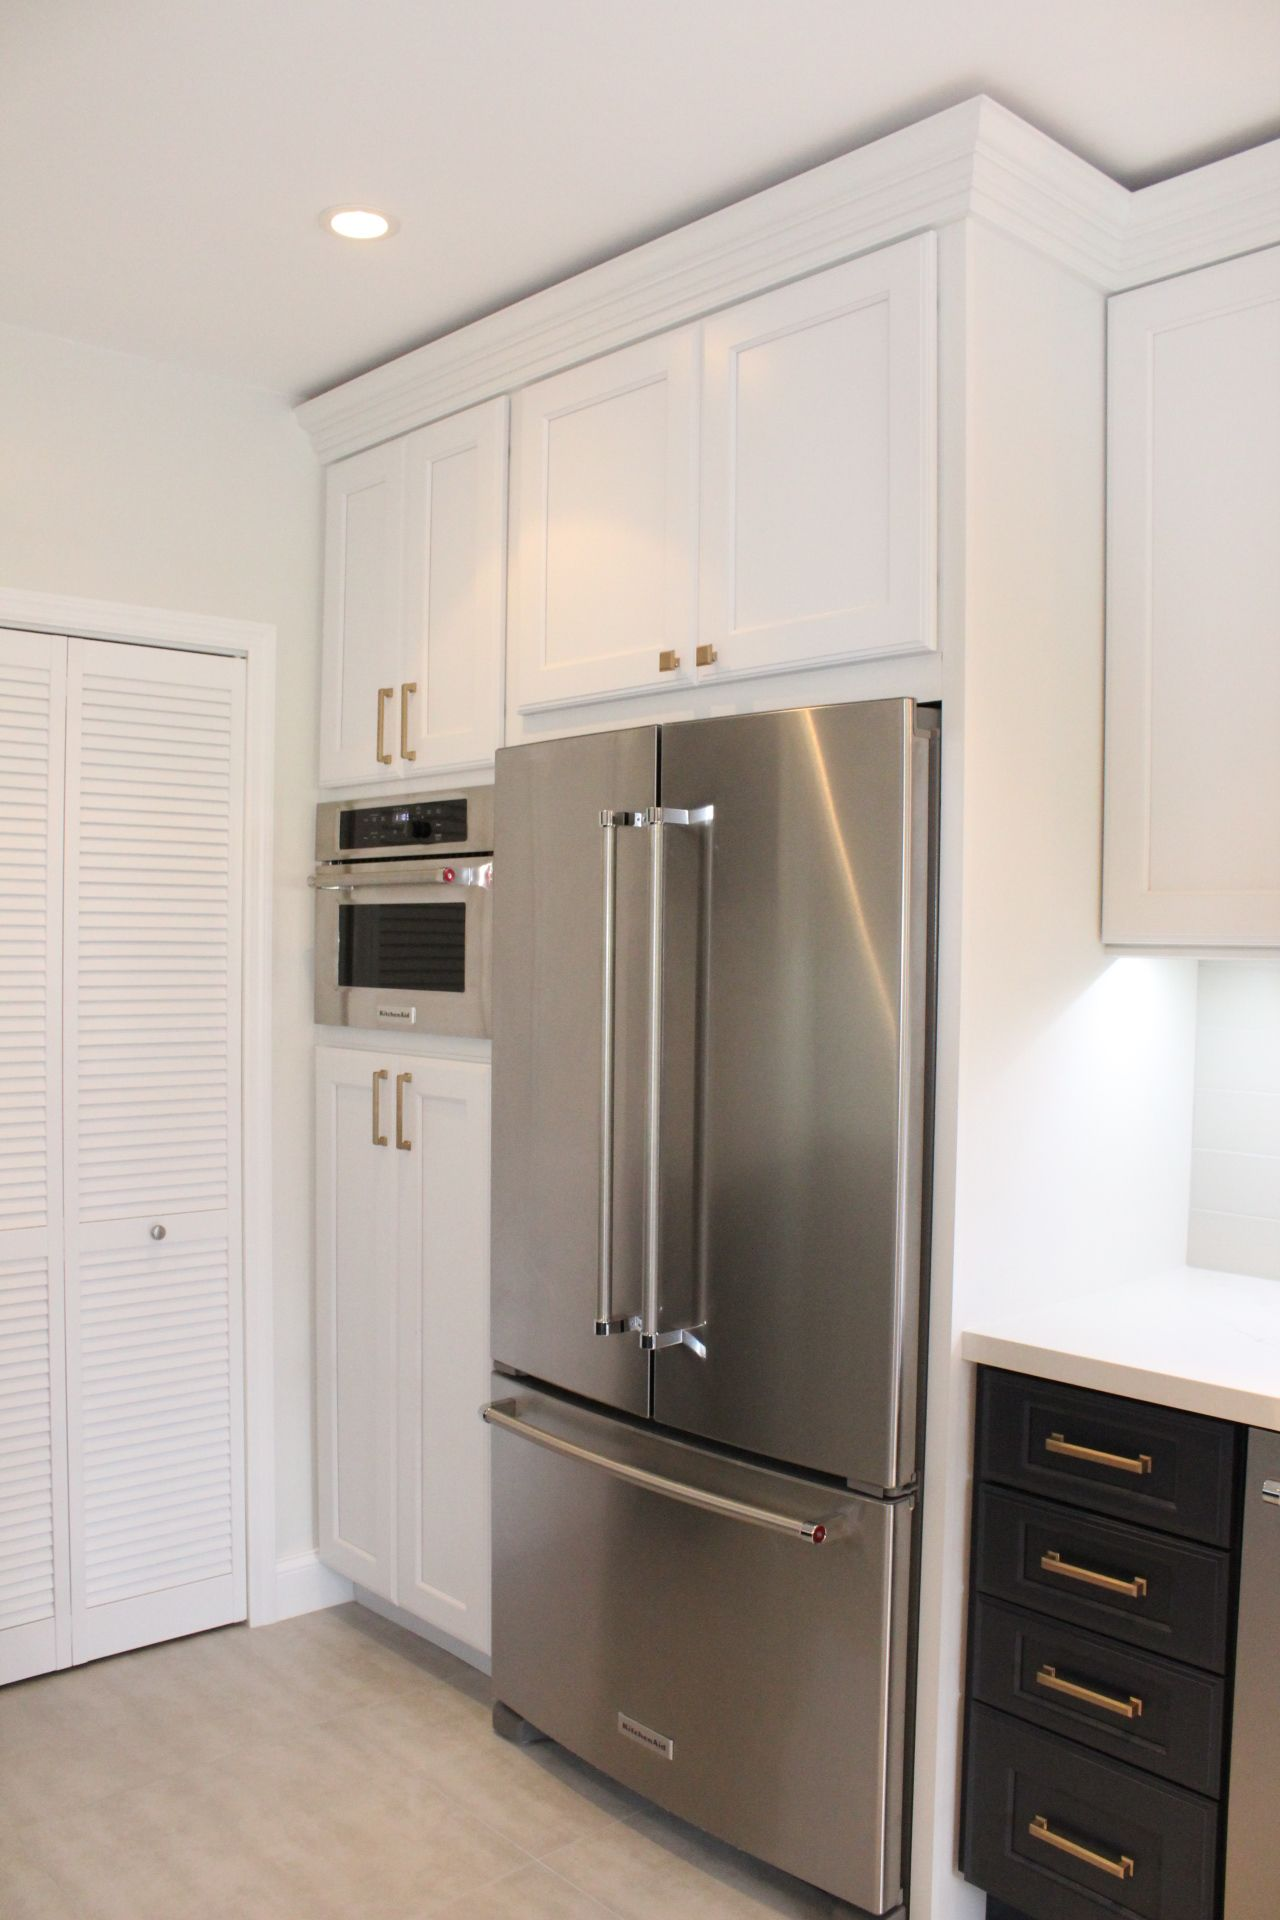 I Love Our New Contrasting Midnight Blue And Dove White Kraftmaid Cabinets The Kitchenaid Do Kraftmaid Kitchen Cabinets Kraftmaid Cabinets Kraftmaid Kitchens